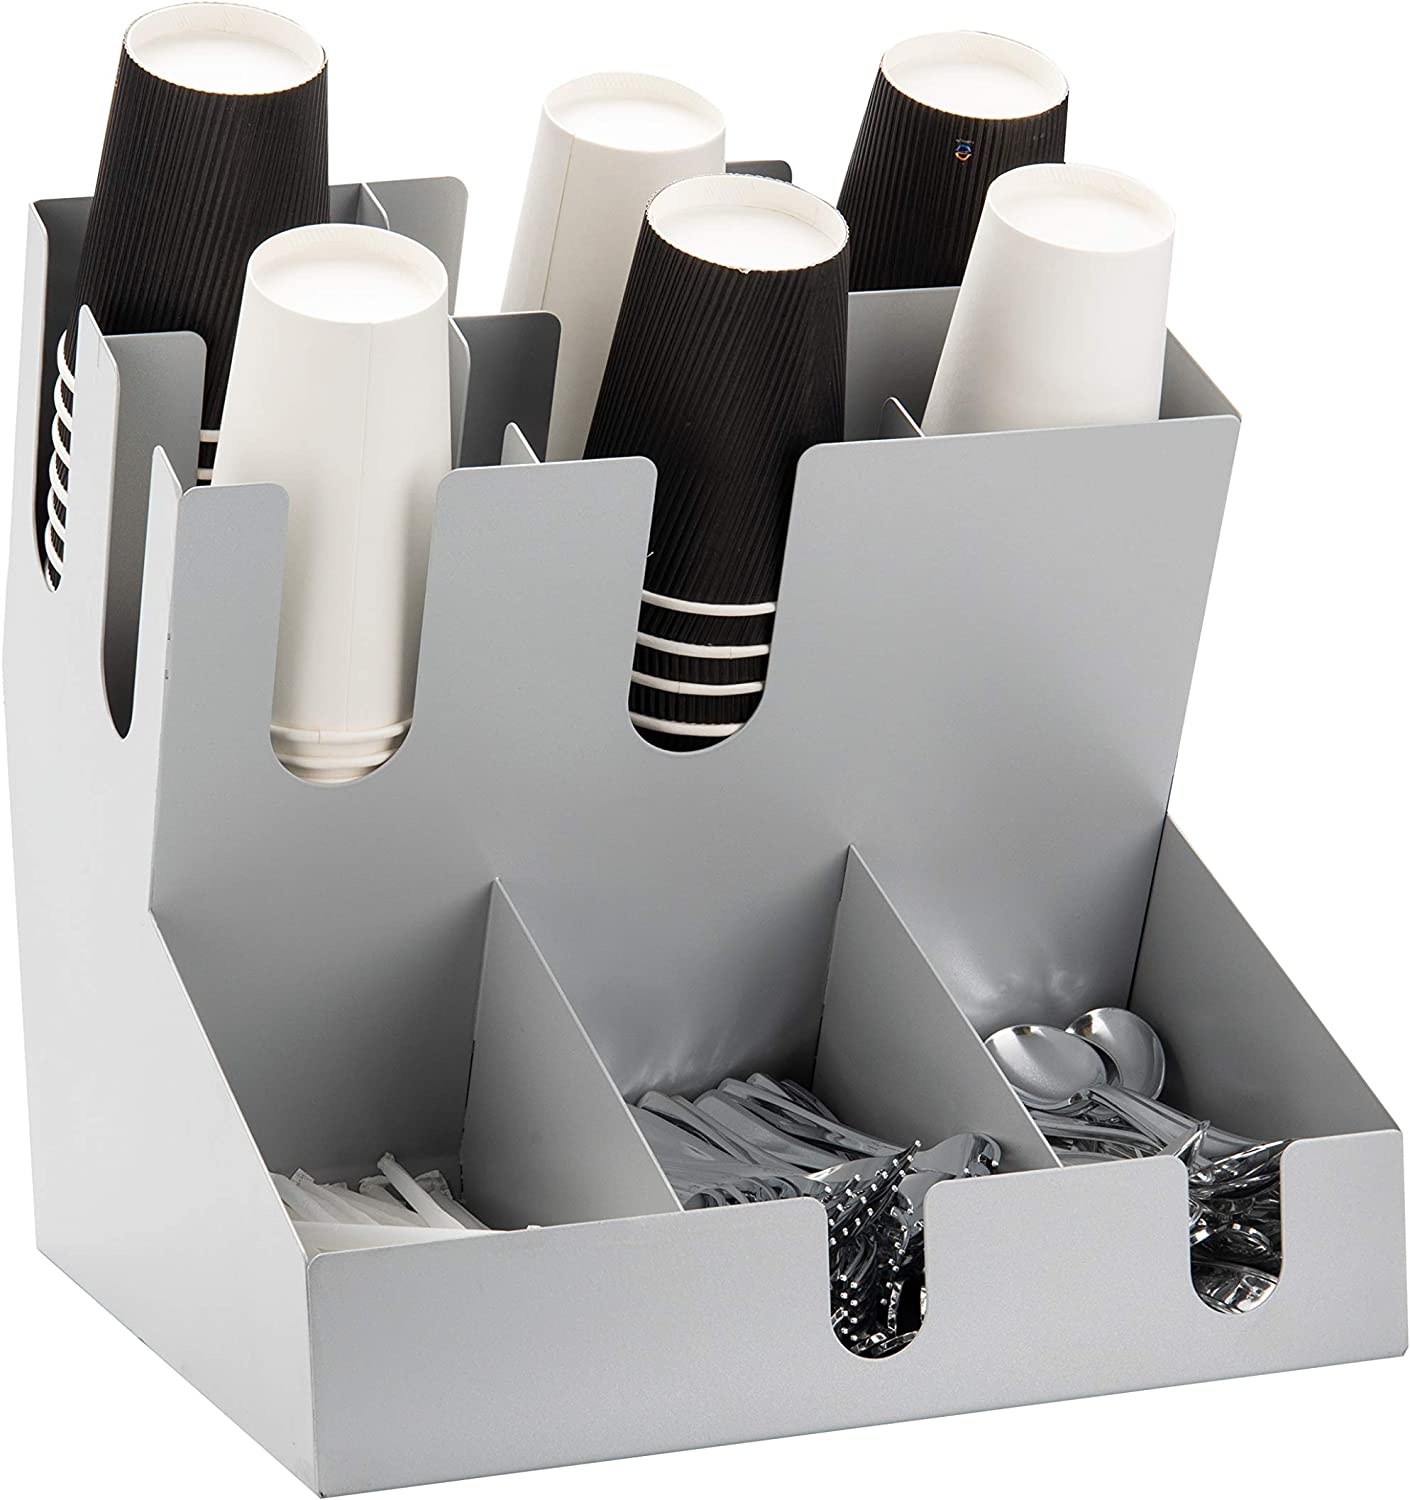 Mind Reader Condiment Station Multi-Section Organizer for Hot or Cold Disposable Cups, Lids, Straws, Utensil Storage, Stainless Steel, Silver